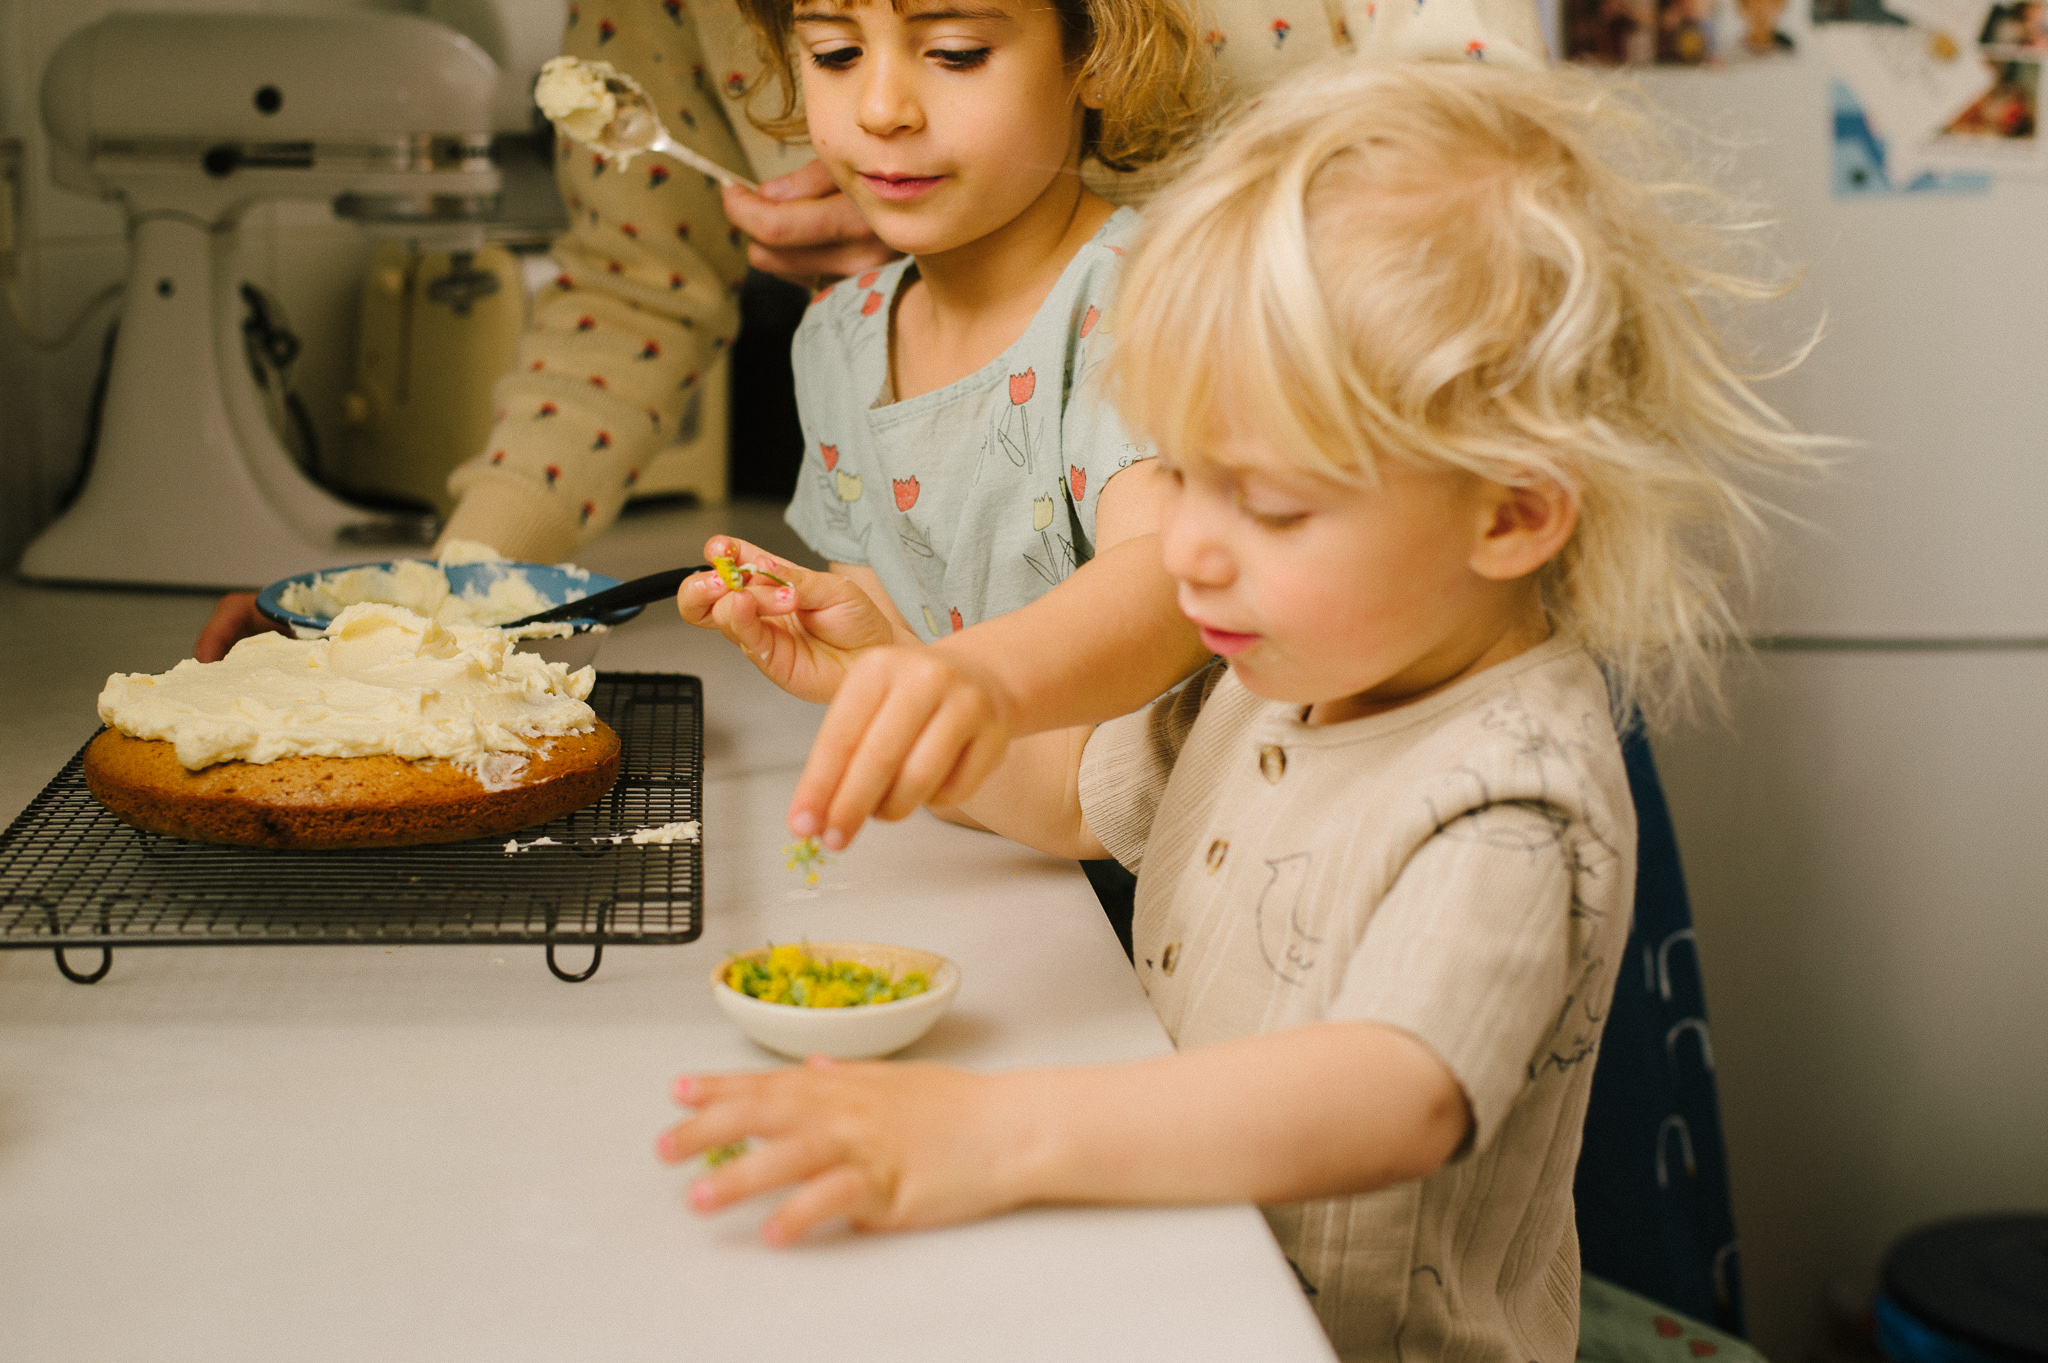 BOBO CHOSES THE HAPPYSADS RECIPE